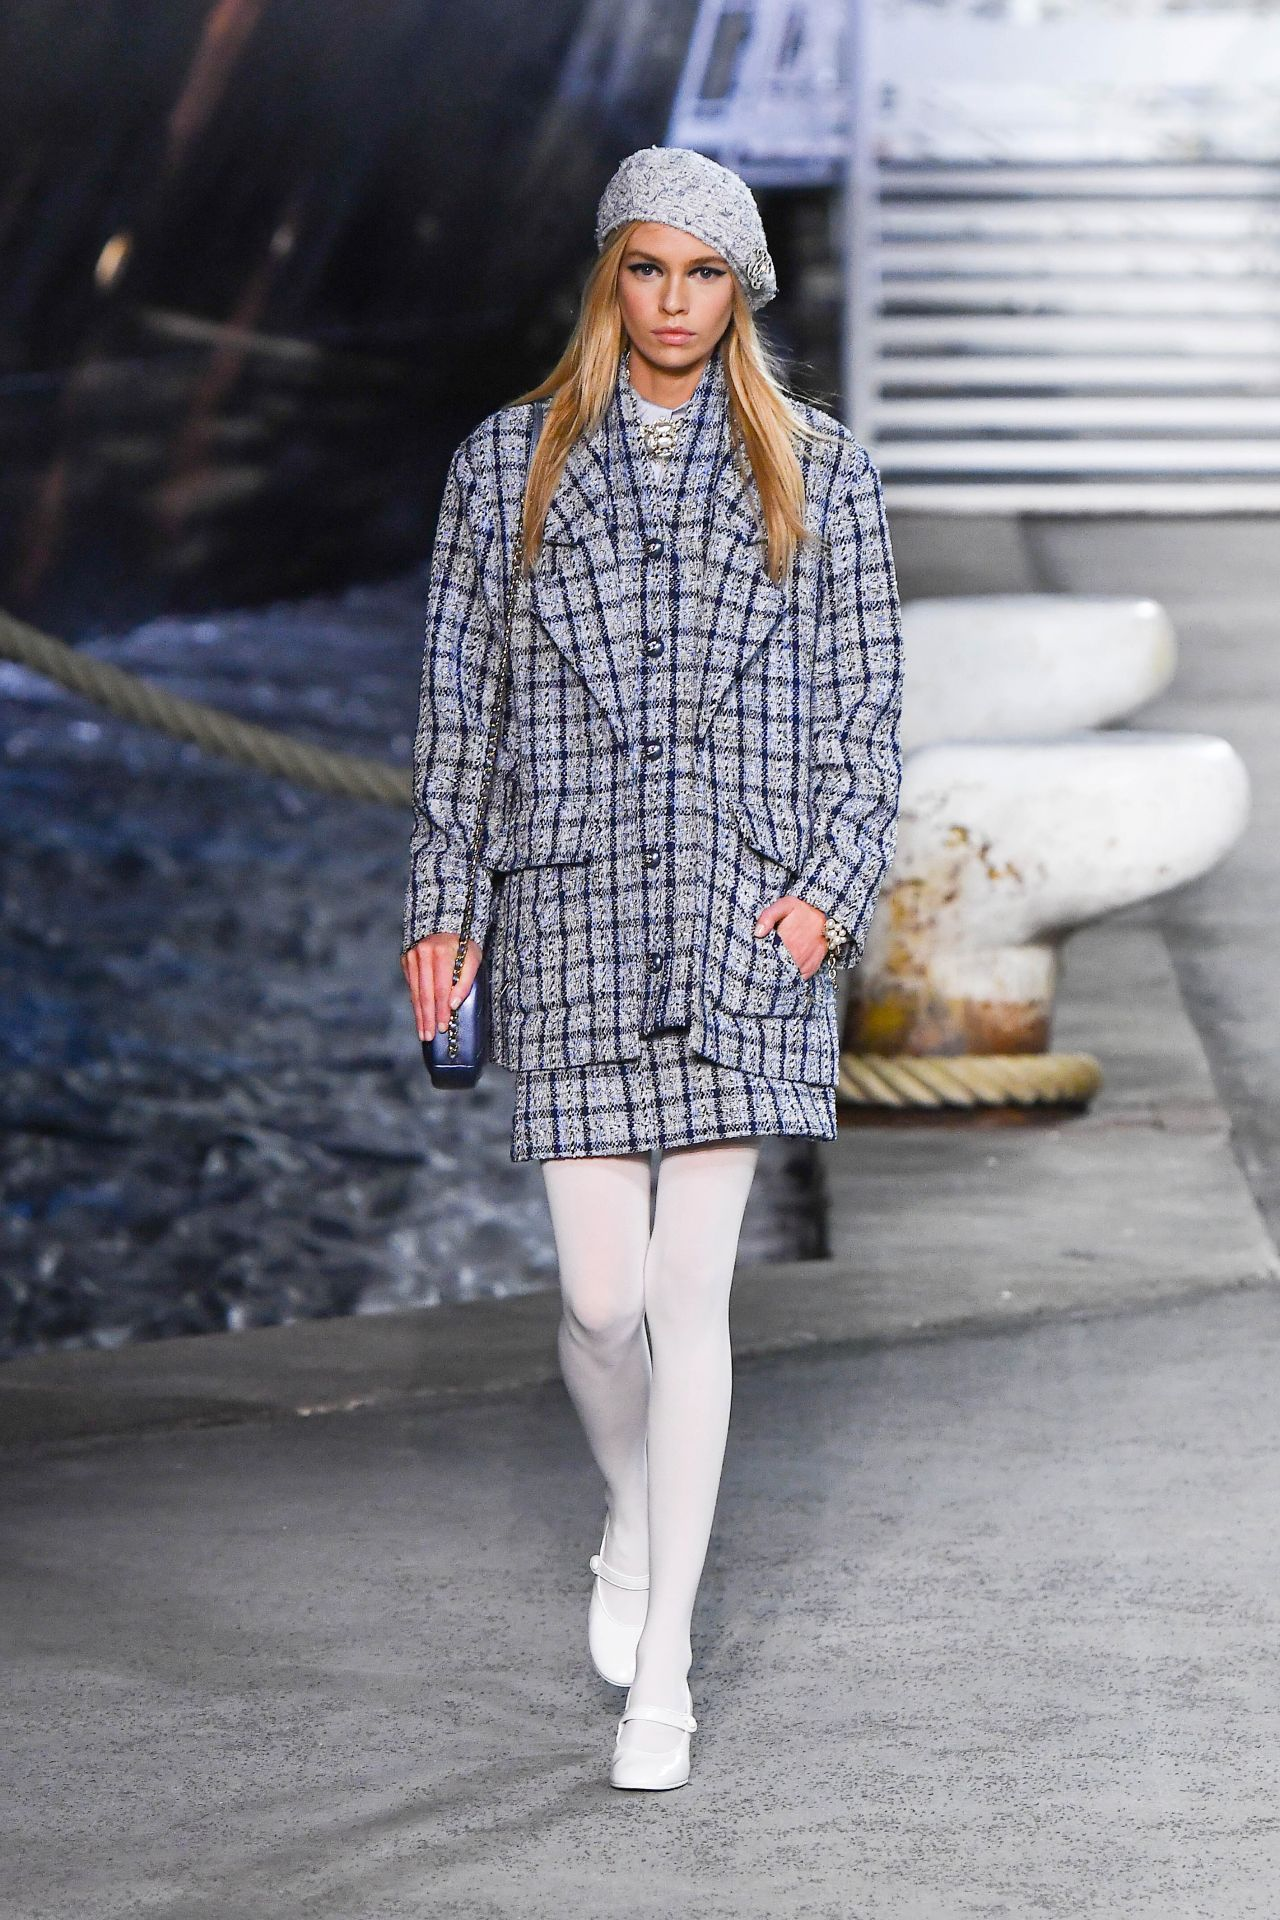 e7314a005498 Stella Maxwell - Chanel Cruise Collection Runway in Paris 05 03 2018